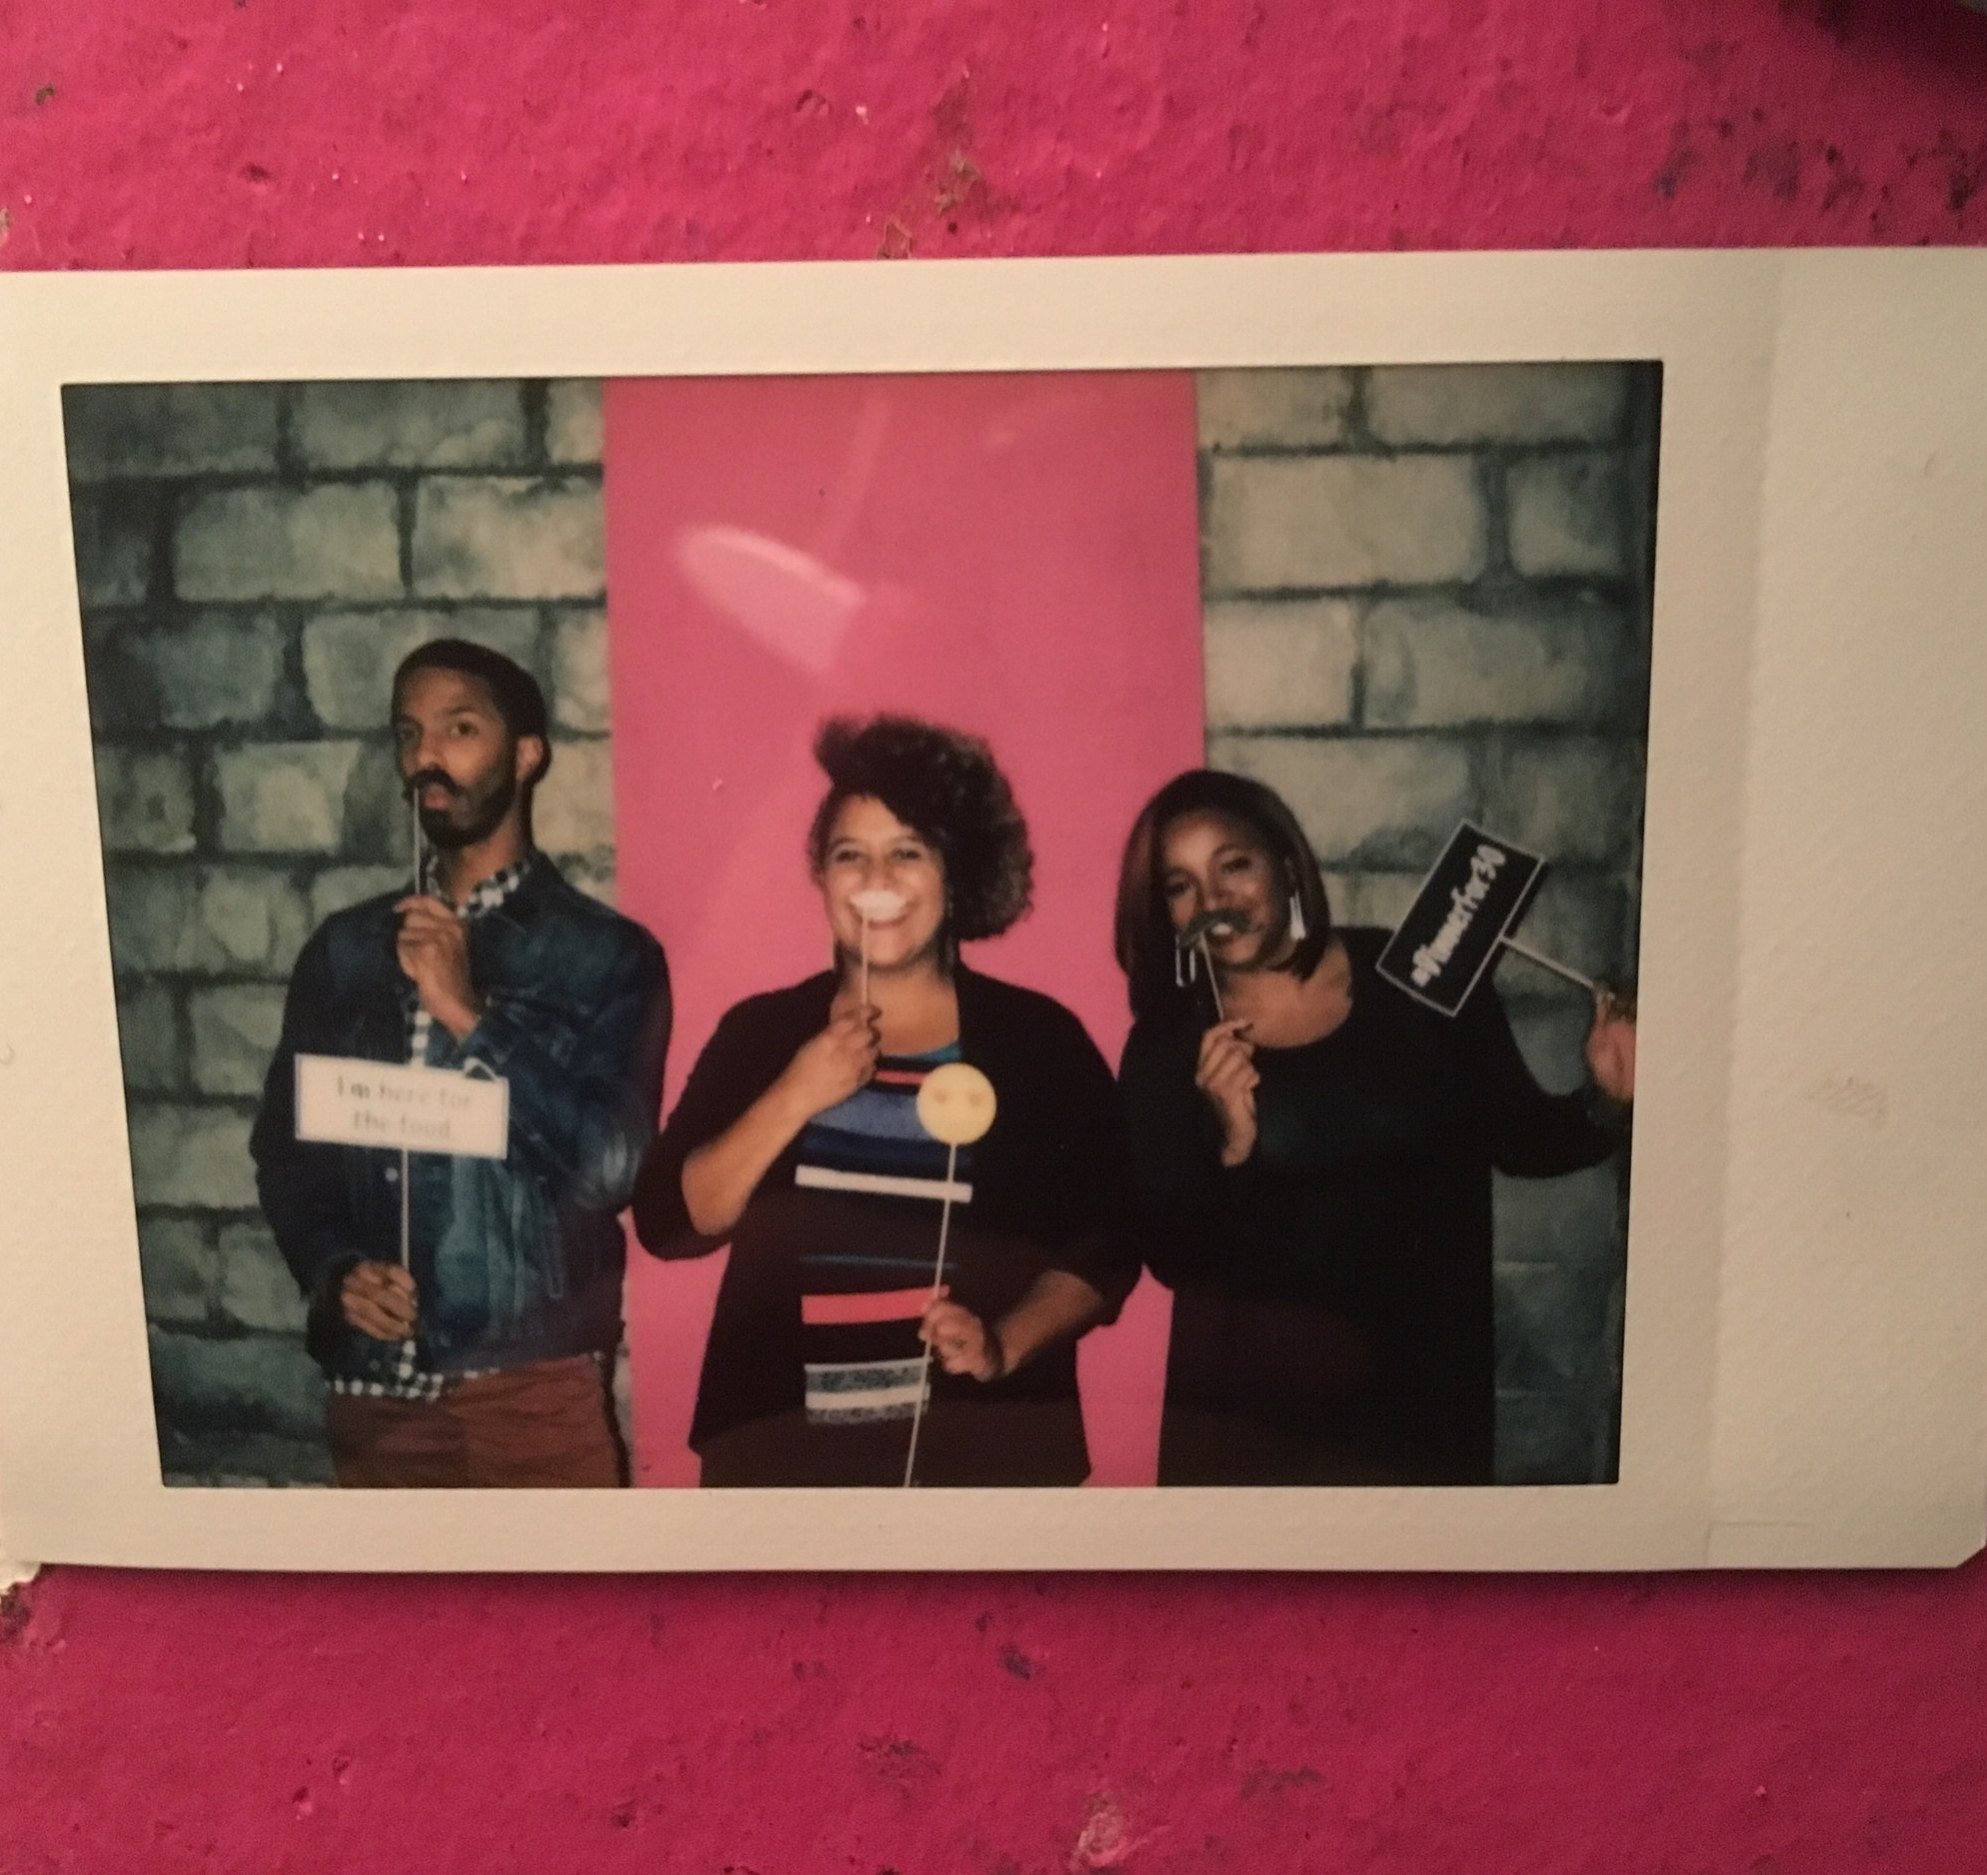 Photo Booth Polaroid Example